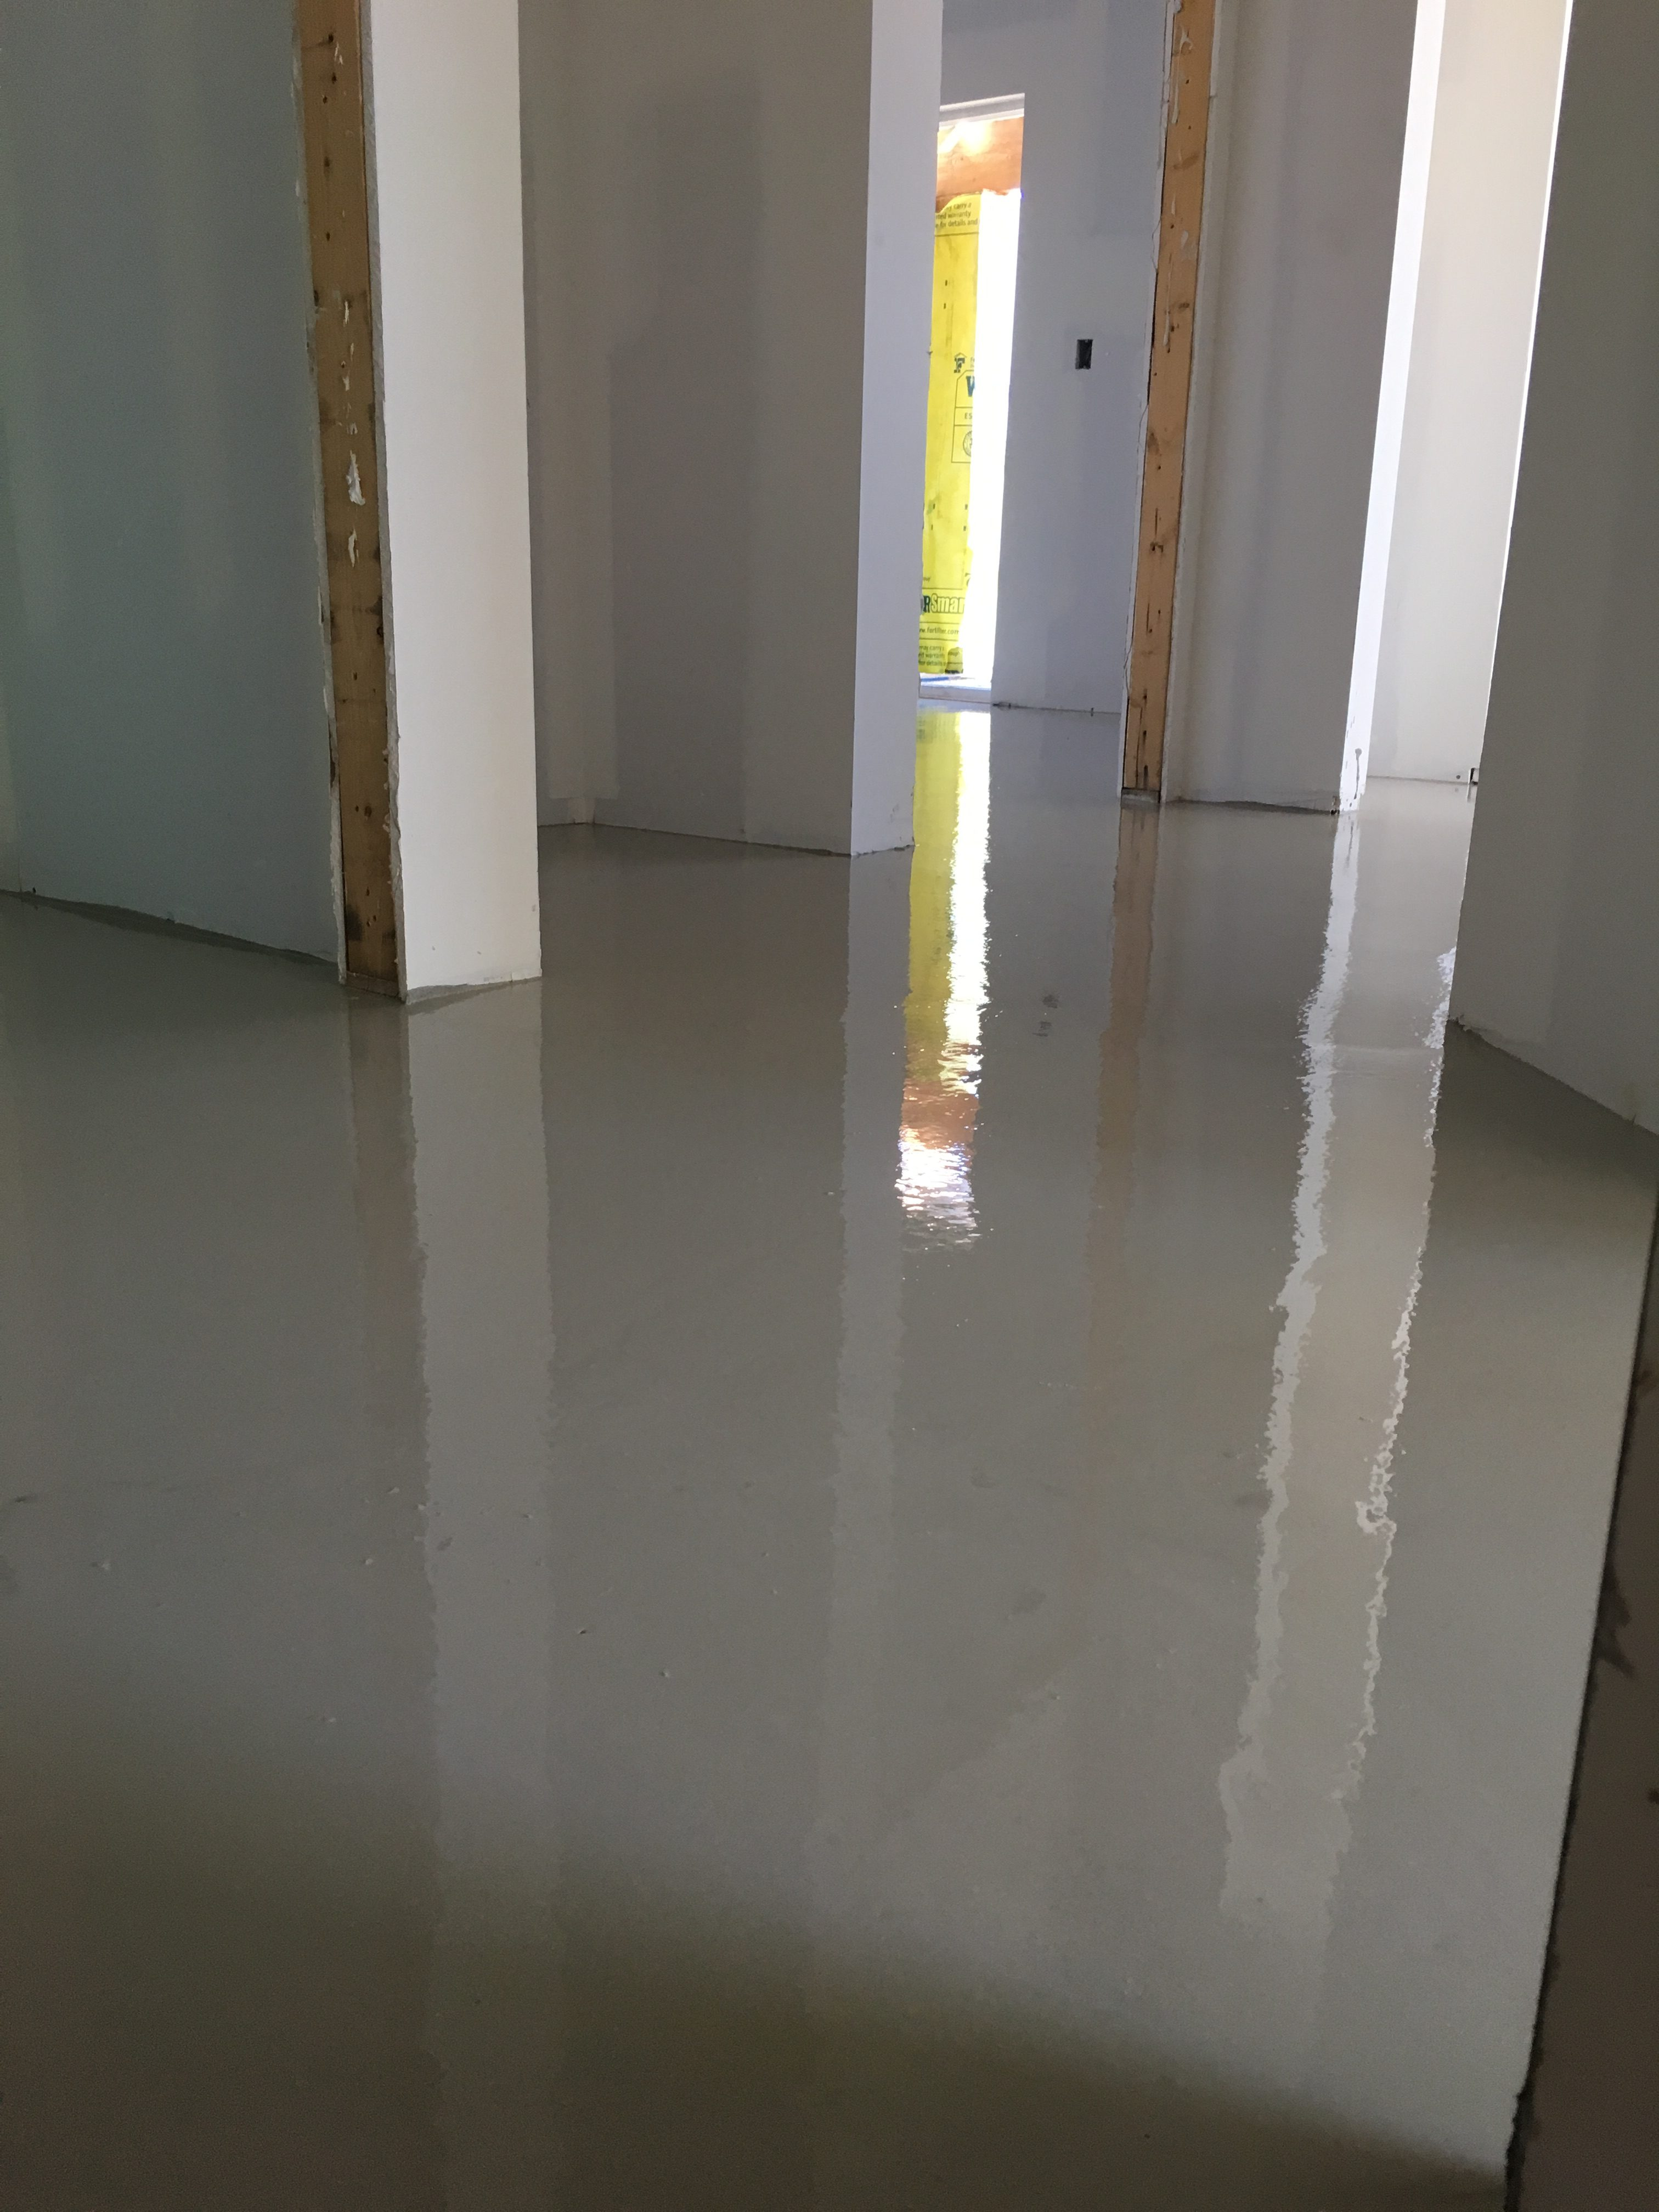 Dependable Floor Products – Professional Grade Floor Products